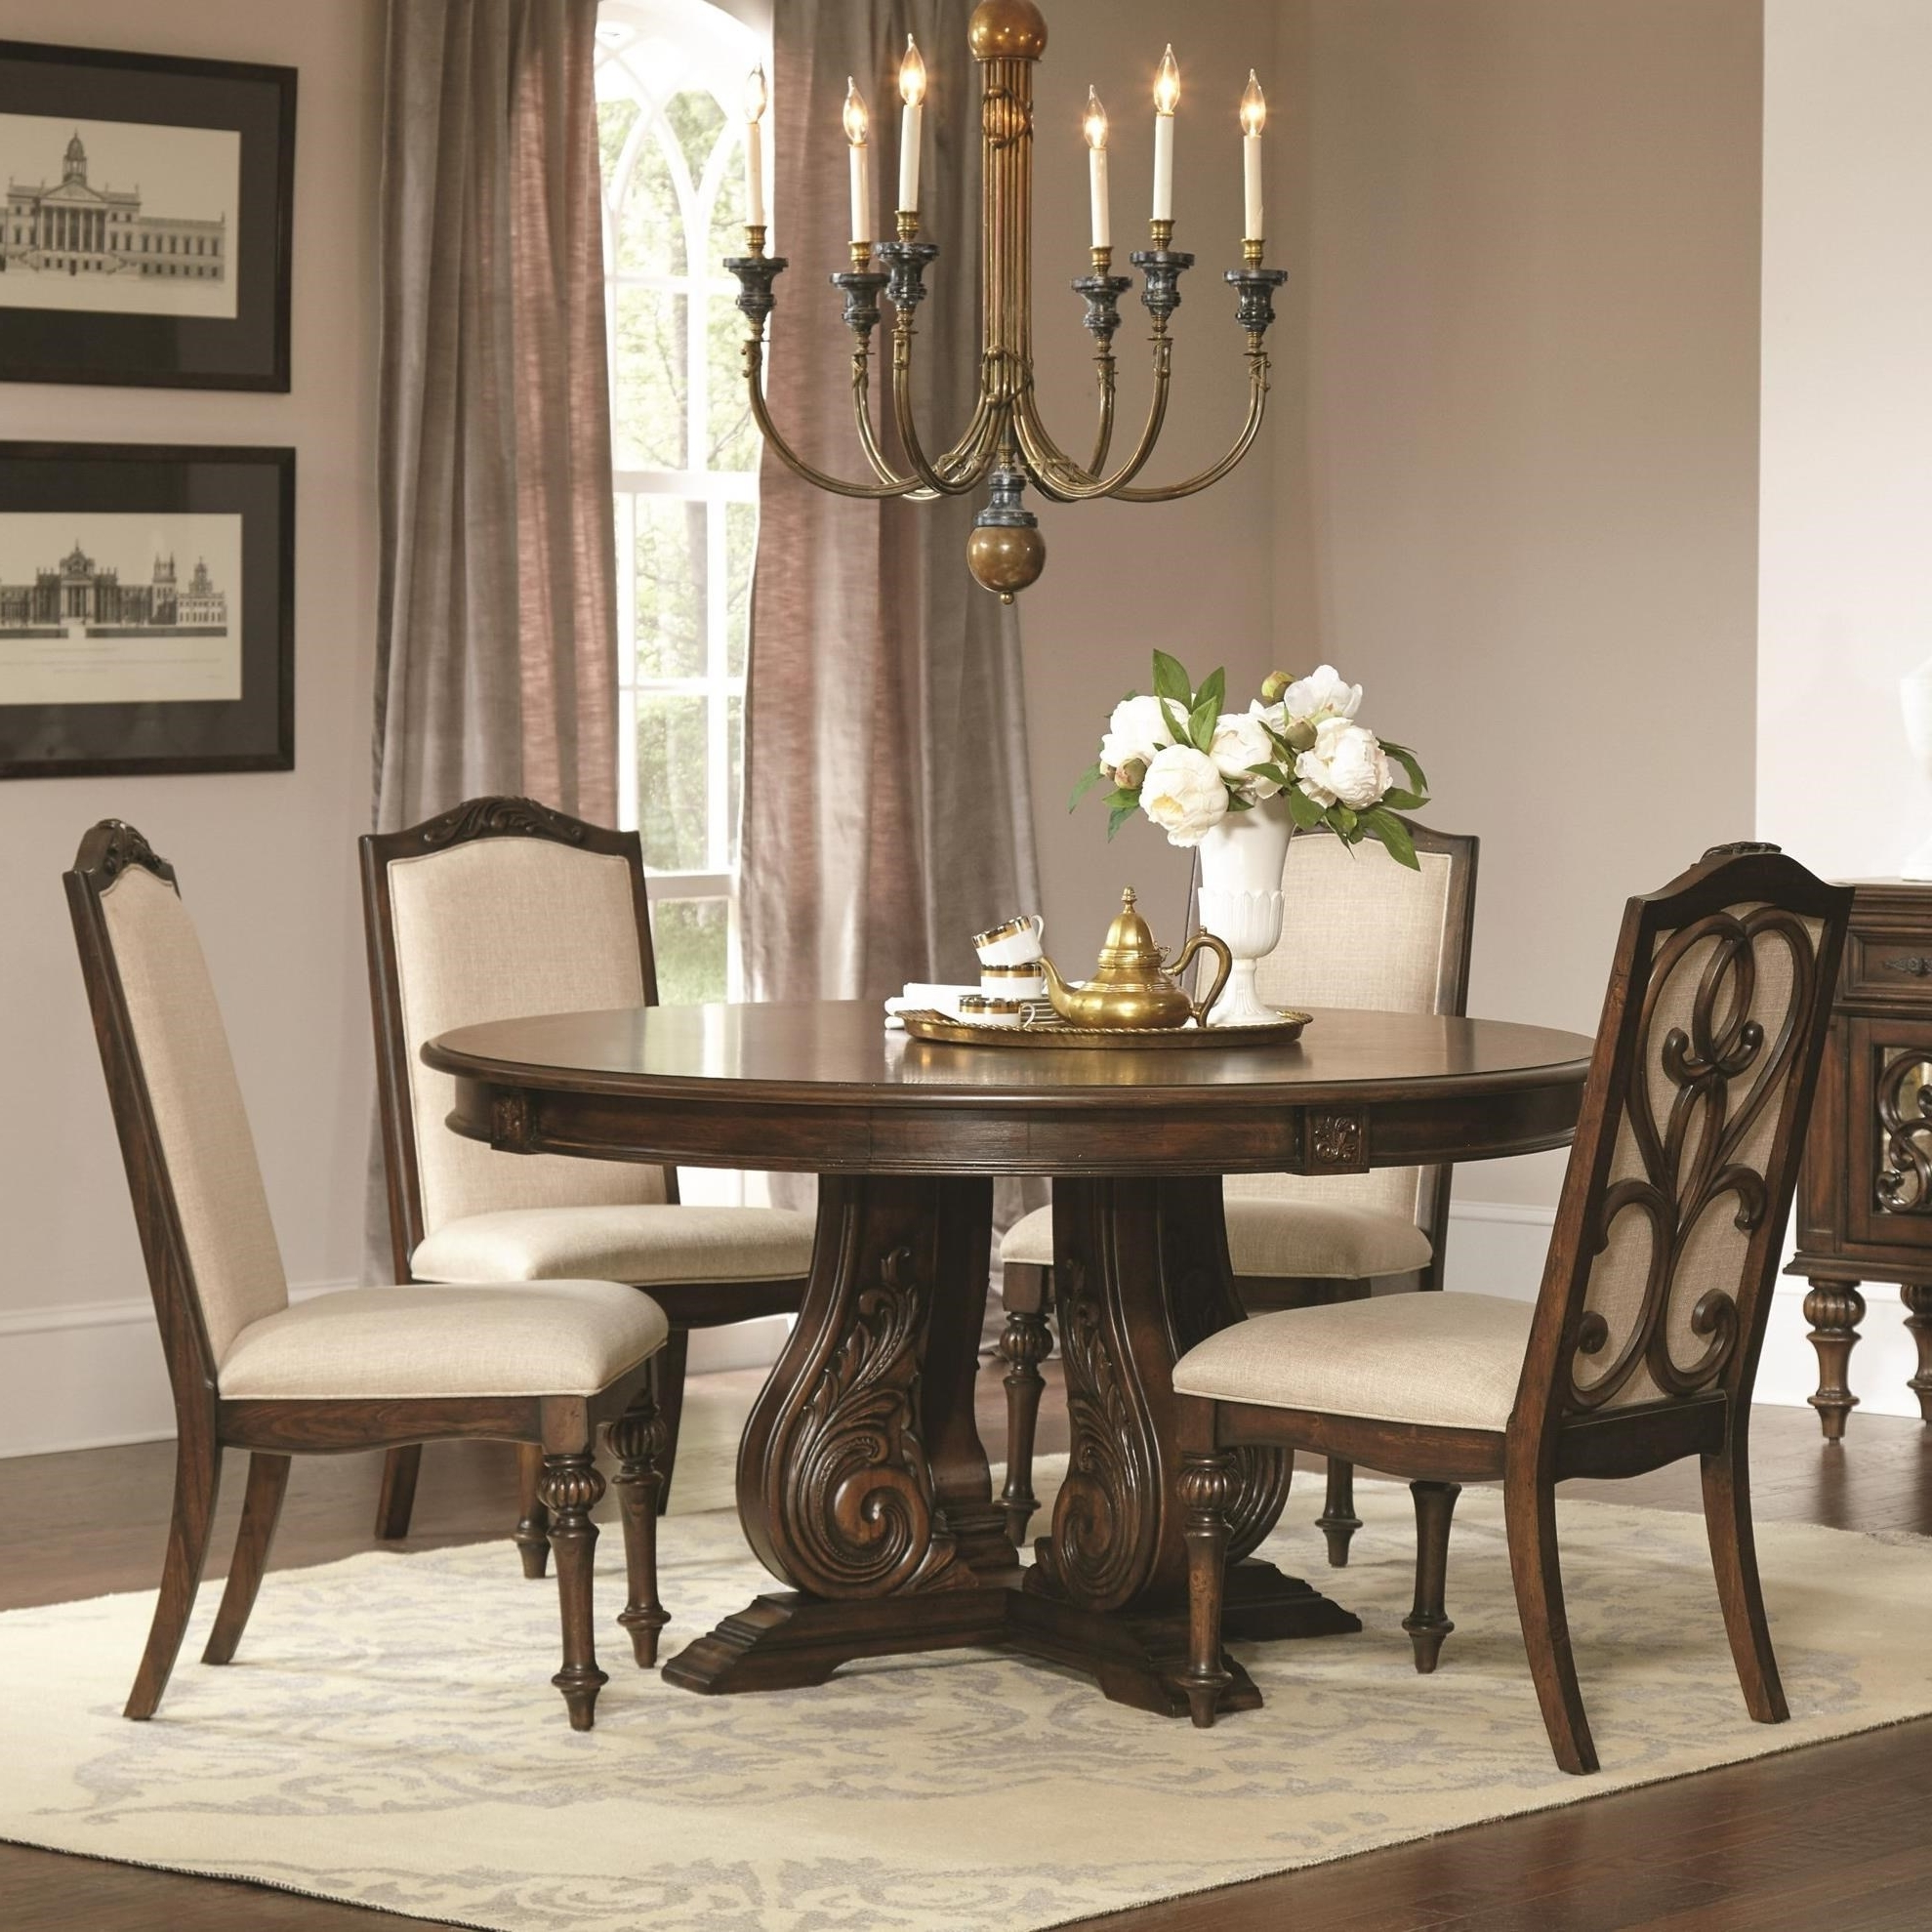 Jaxon 5 Piece Extension Counter Sets With Wood Stools Within Well Known Coaster Ilana Traditional 5 Piece Table And Chair Set With Pedestal (View 22 of 25)